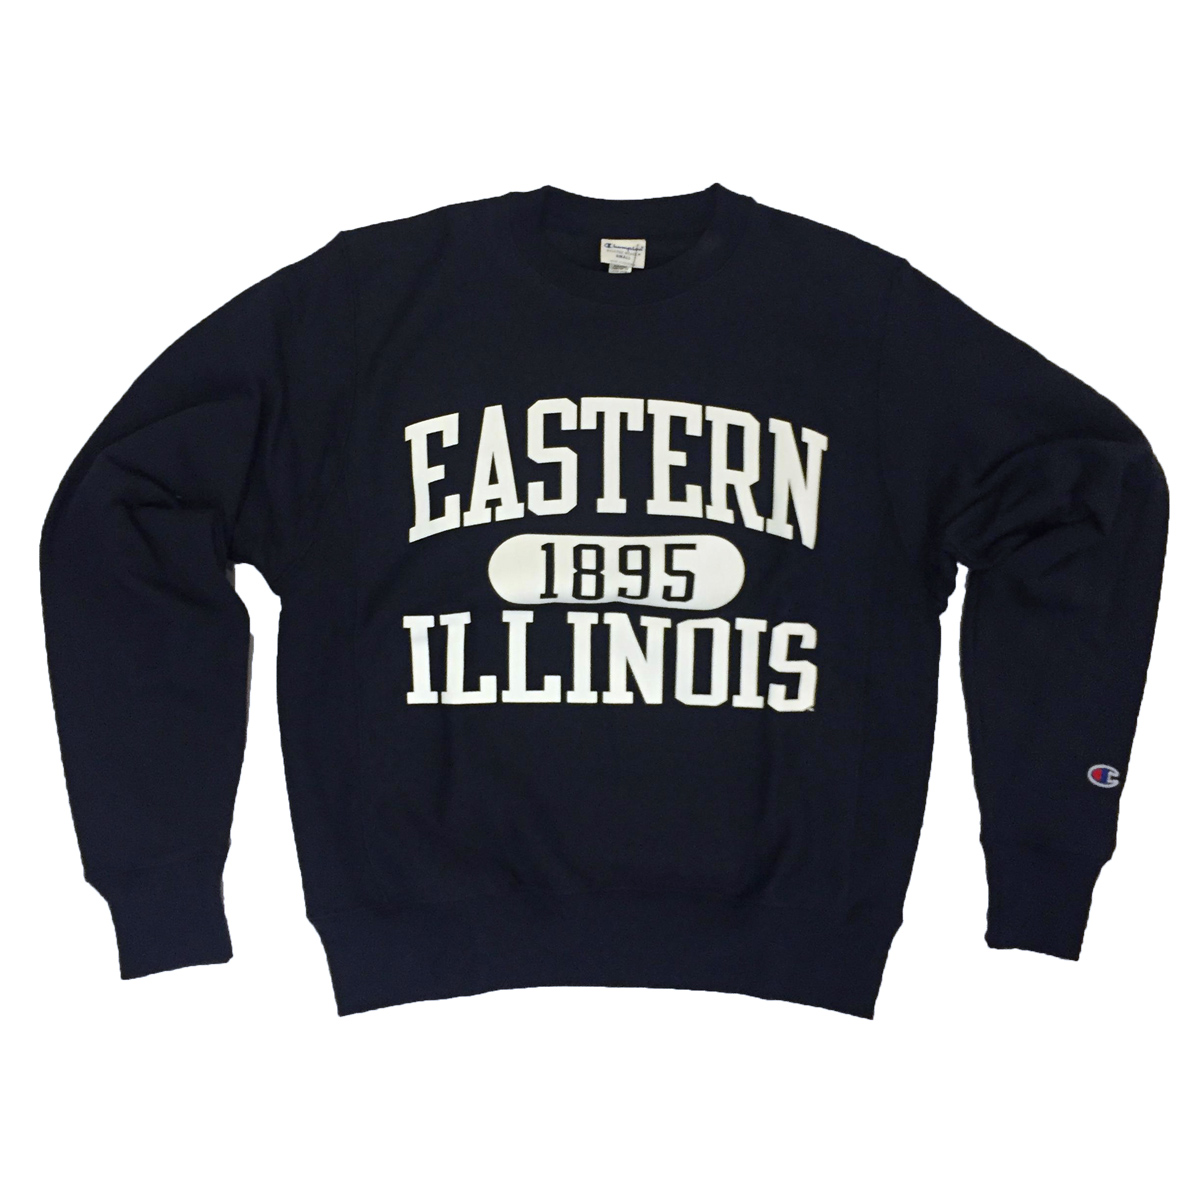 Image For Eastern - 1895 - Illinois Crew Neck Sweatshirt